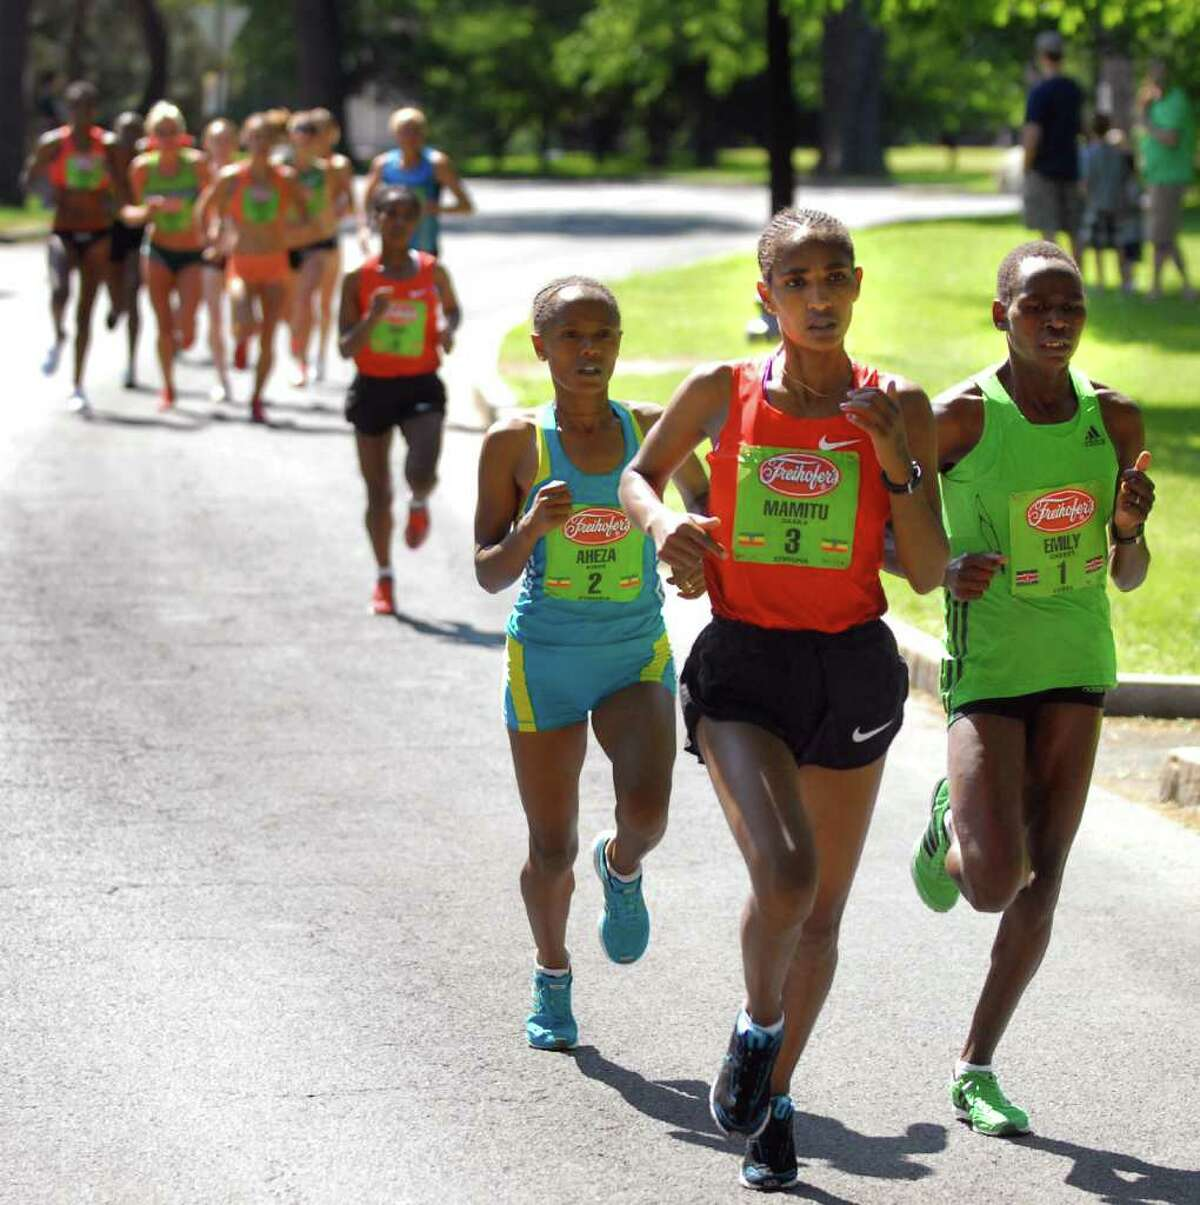 Mamitu Daska (3) of Ethiopia runs in the lead, followed by Emily Chebet (1) and Aheza Kiros (2) in Washington Park during Freihofer's 33rd Run for Women on Saturday, June 4, 2011, in Albany, N.Y. (Cindy Schultz / Times Union)